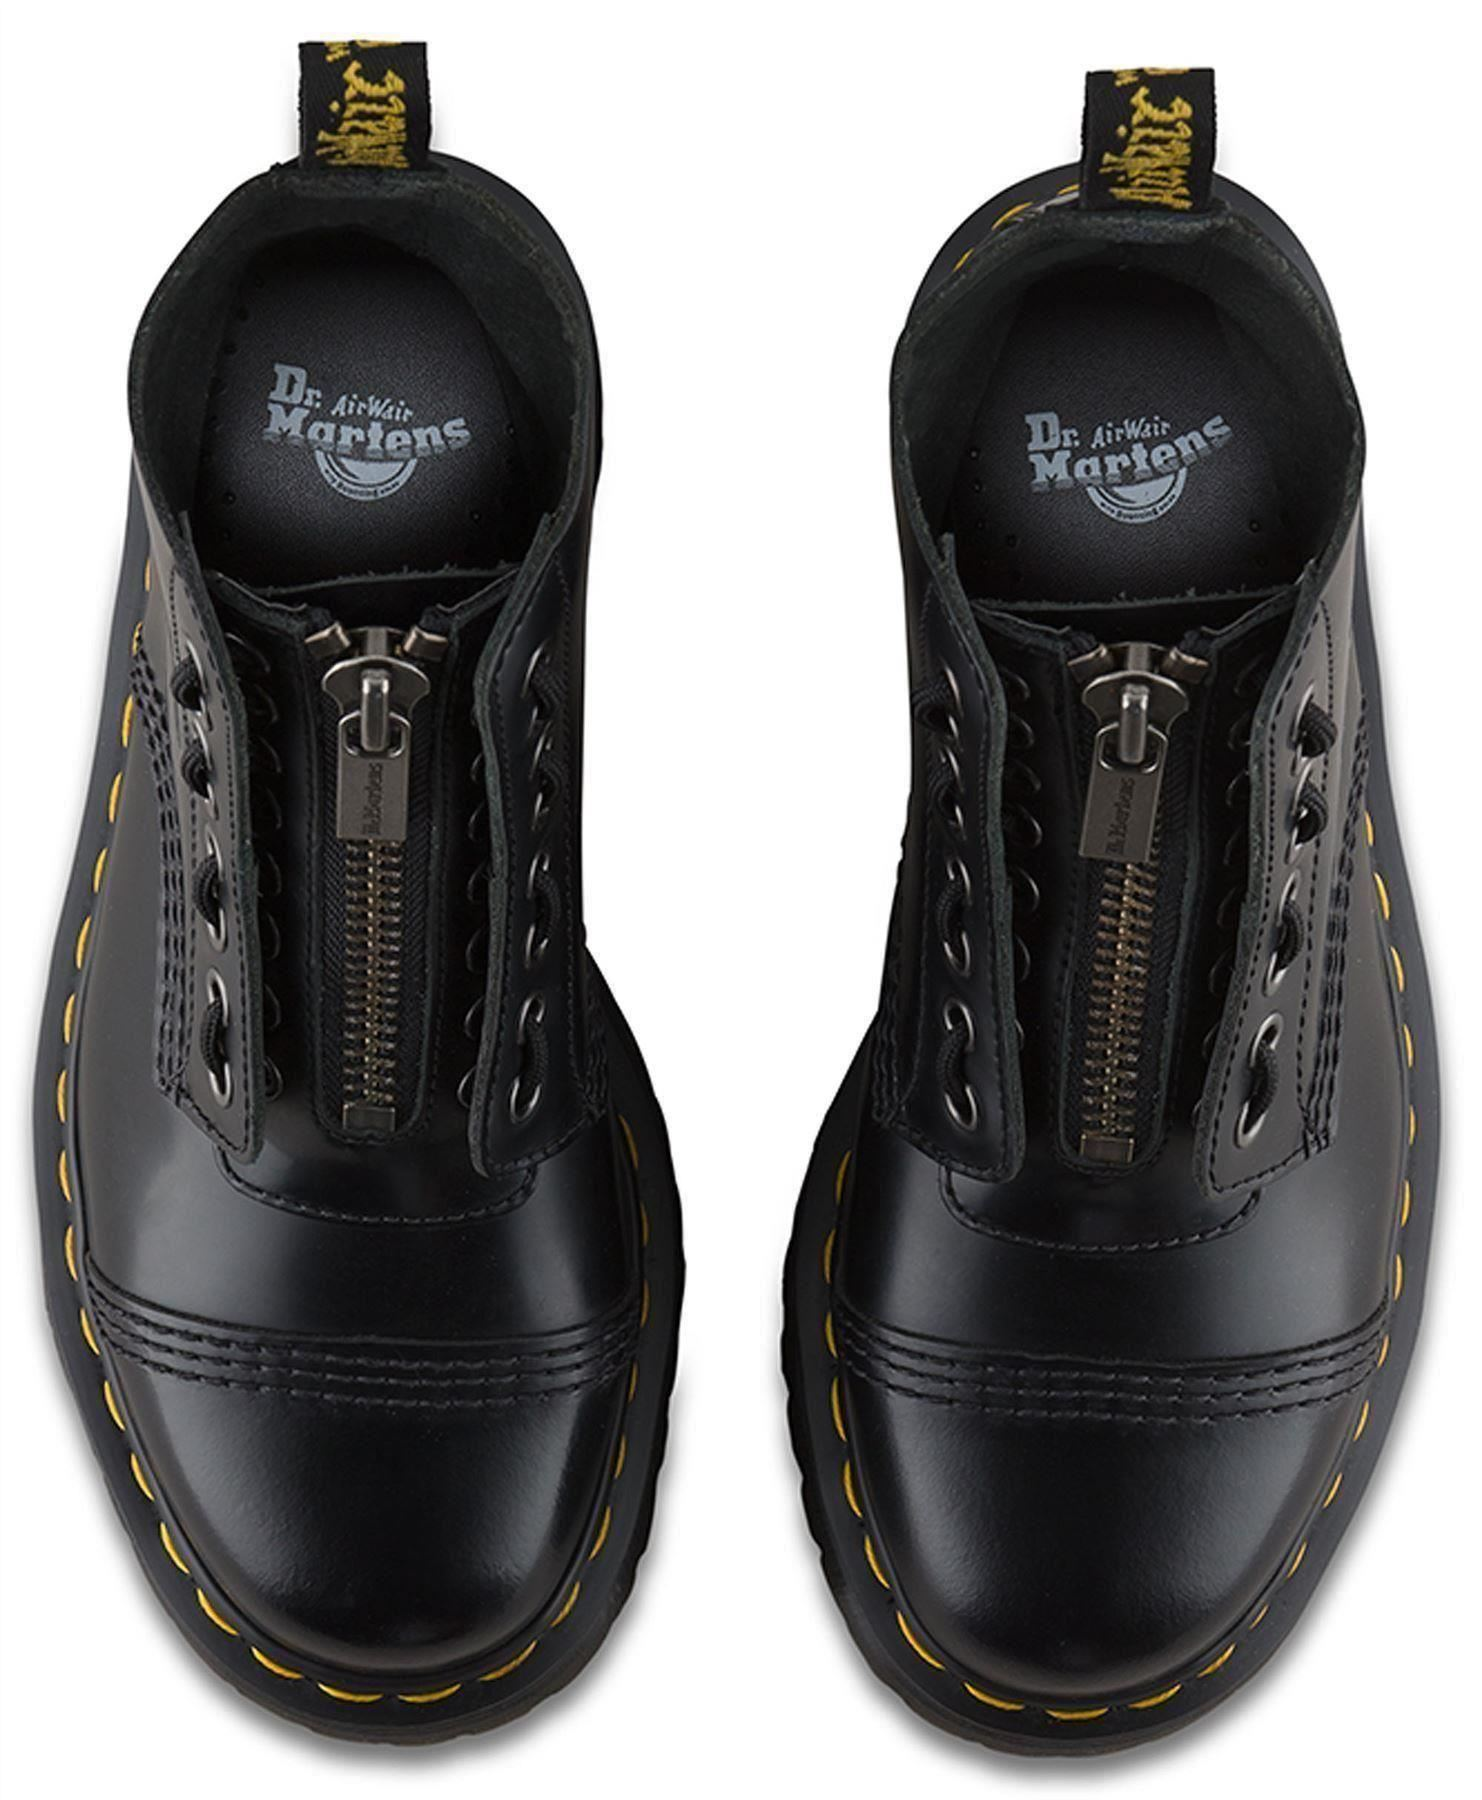 711c9810a4b90 Dr Martens Ladies Sinclair Black Polished Smooth Leather Front Zip ...